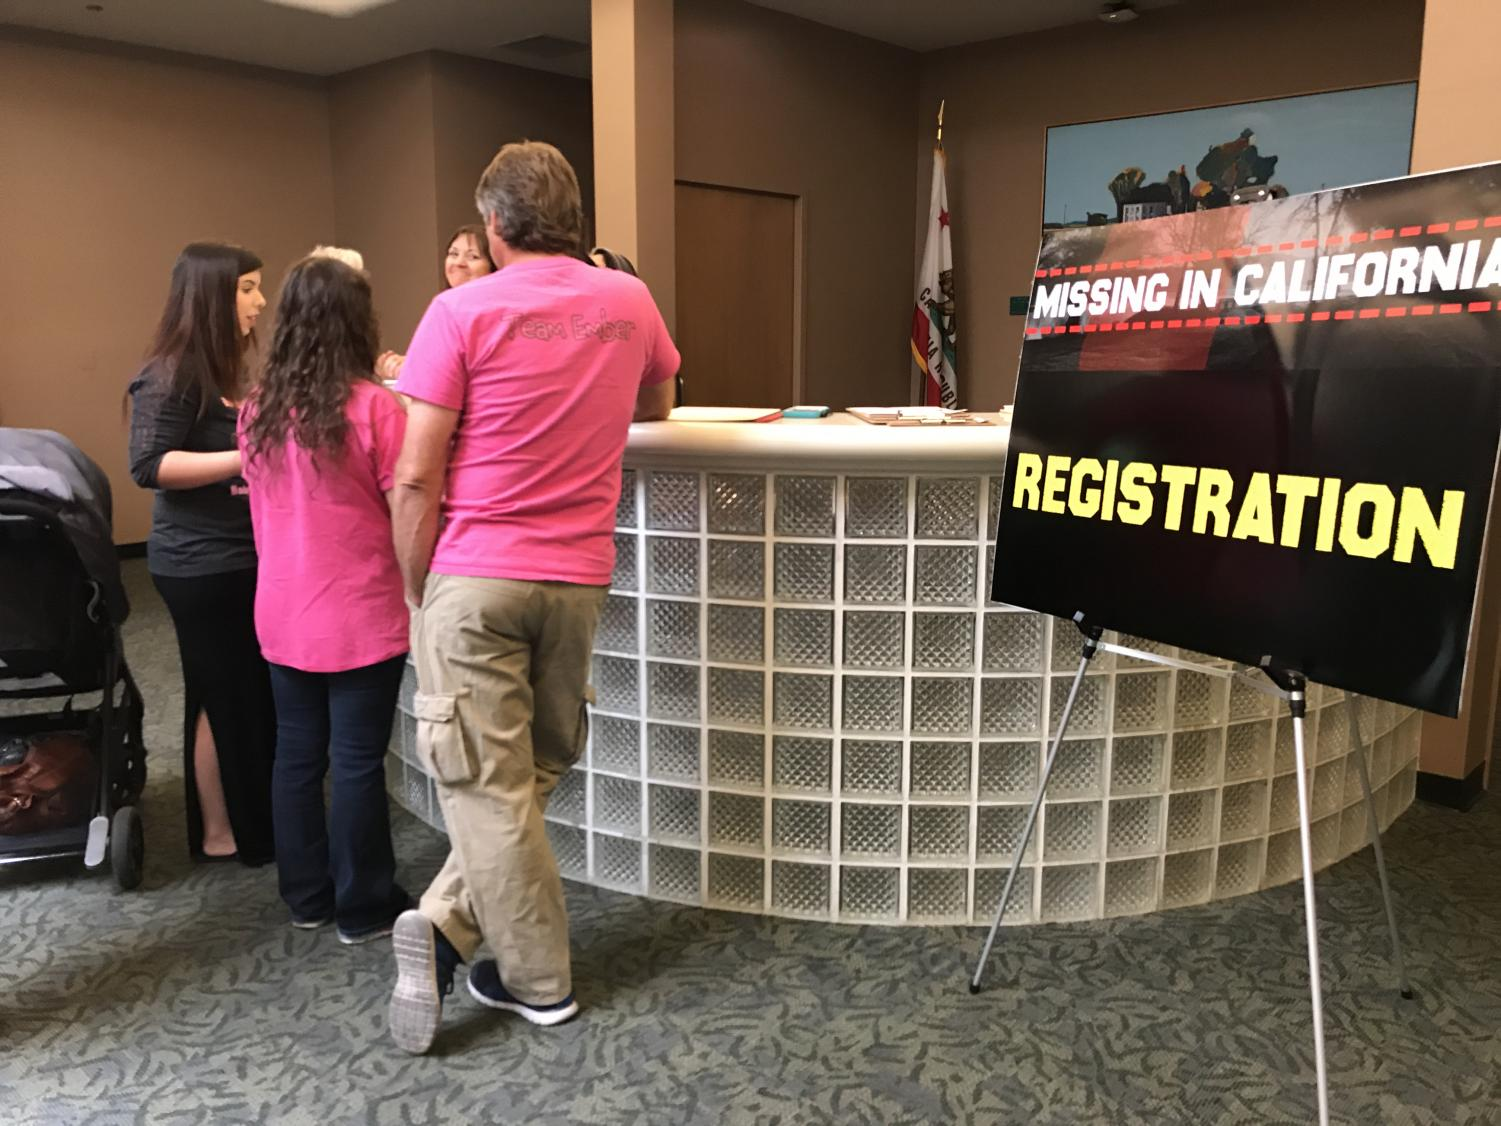 A family checks in at the registration area at the Missing in California conference held at Sacramento State Saturday. A spokesperson from the Sacramento County Sheriff's department said the goal of the conference was to bring clarity to the family members and friends of those who have gone missing.